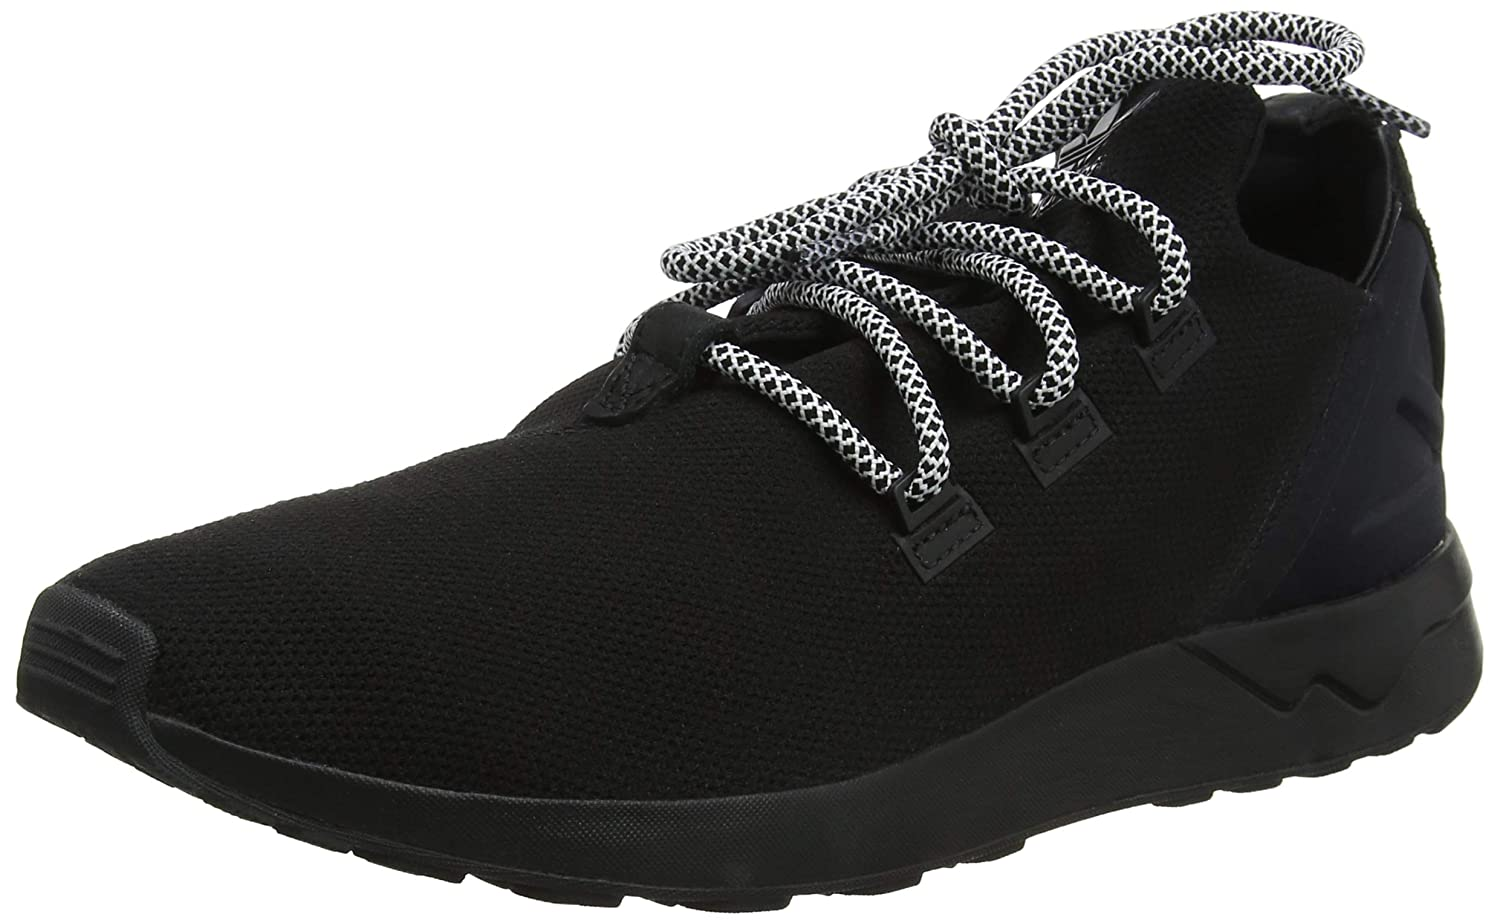 adidas Men s Zx Flux Advance X B49404 Trainers  adidas Originals  Amazon.co. uk  Shoes   Bags 904292a532af